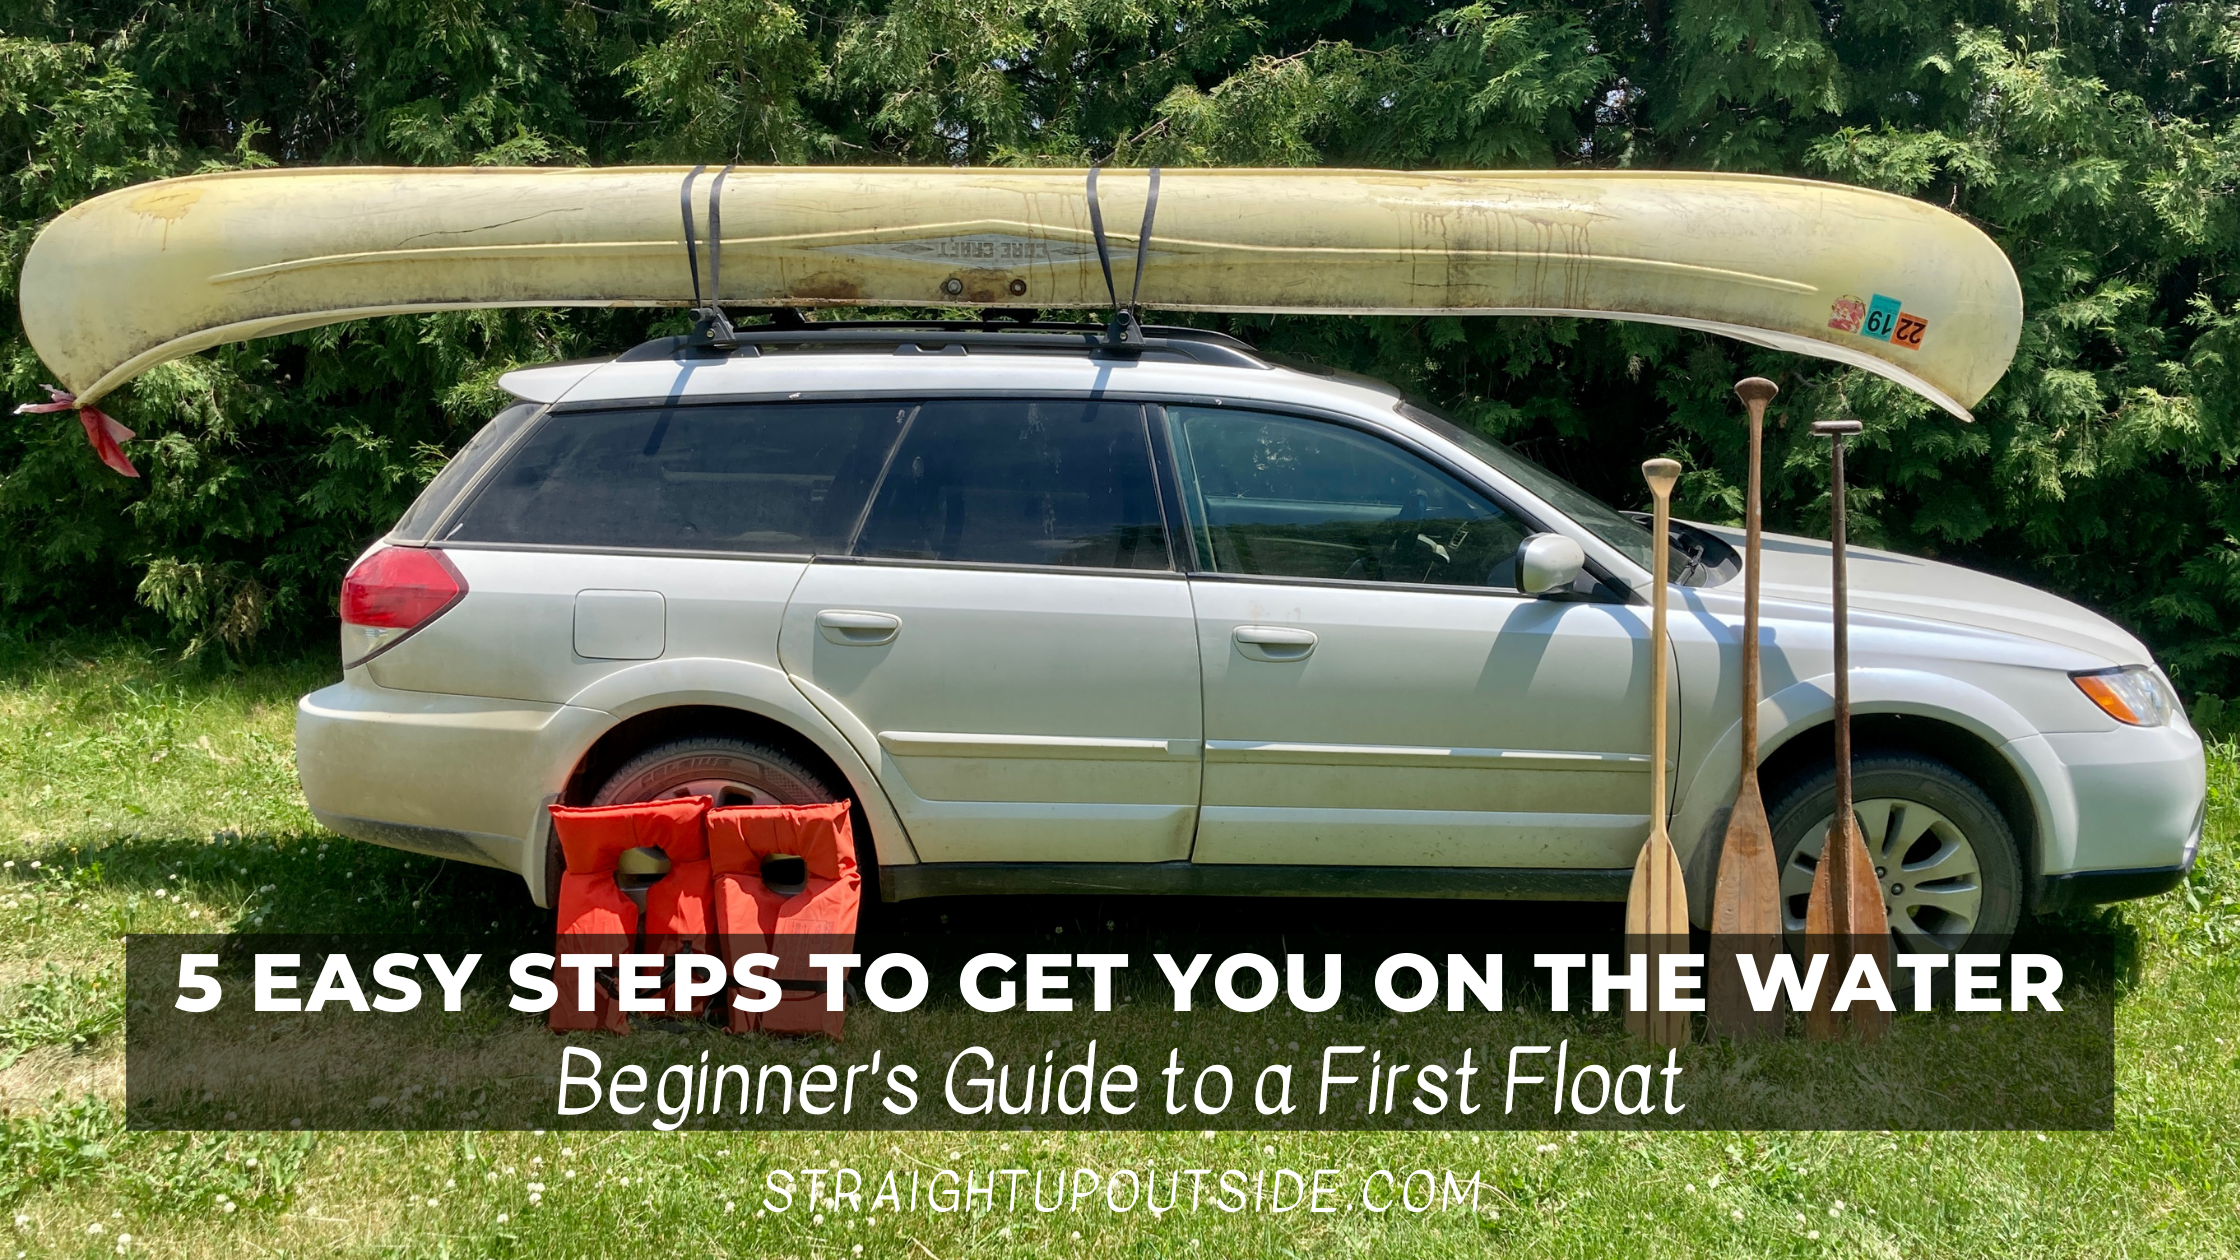 5 Easy Steps to Get You on the Water